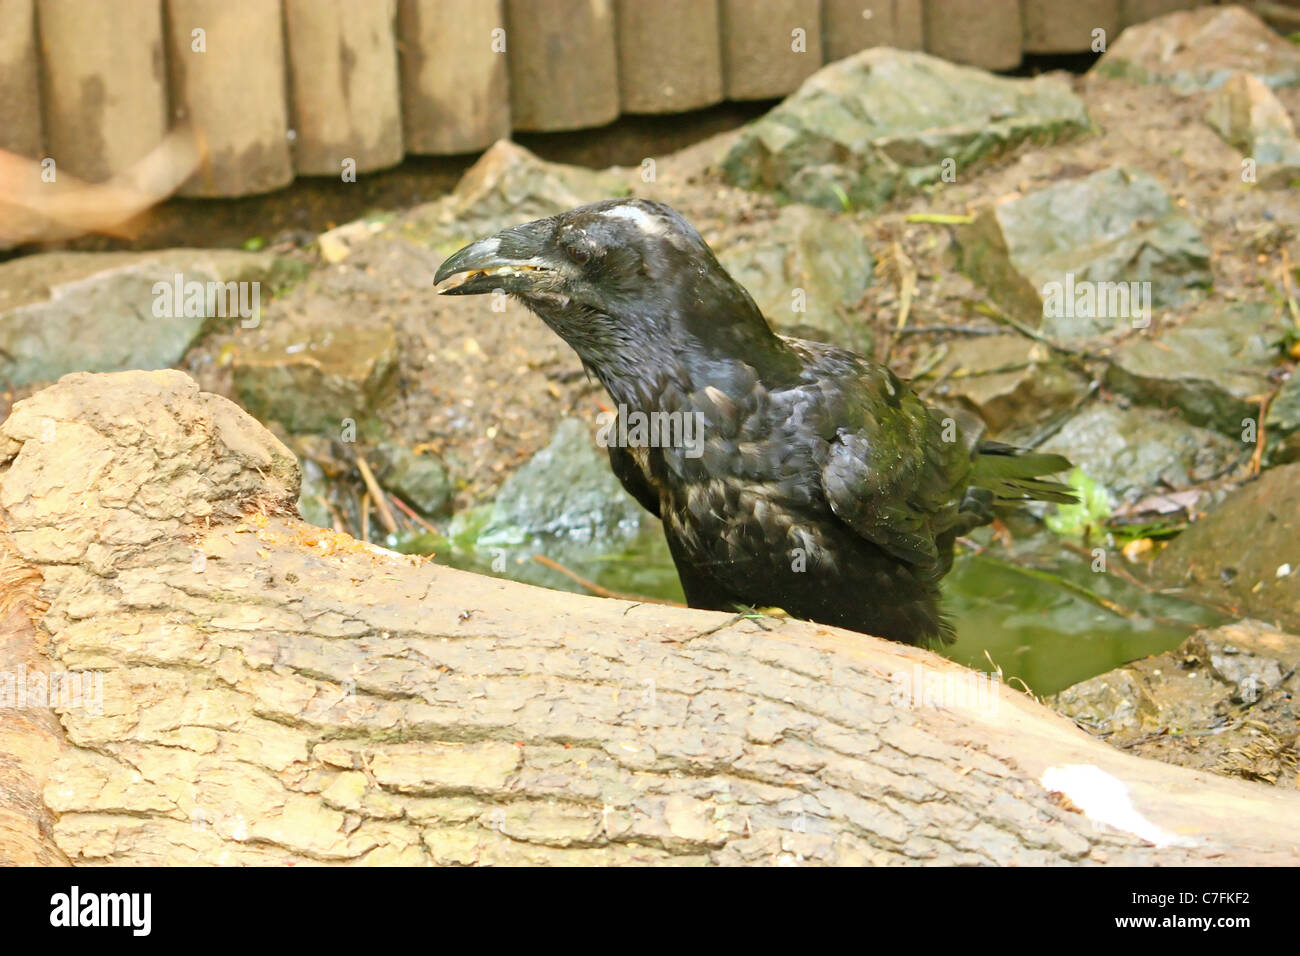 Black raven on the floor ground, picture from the ZOO - Stock Image